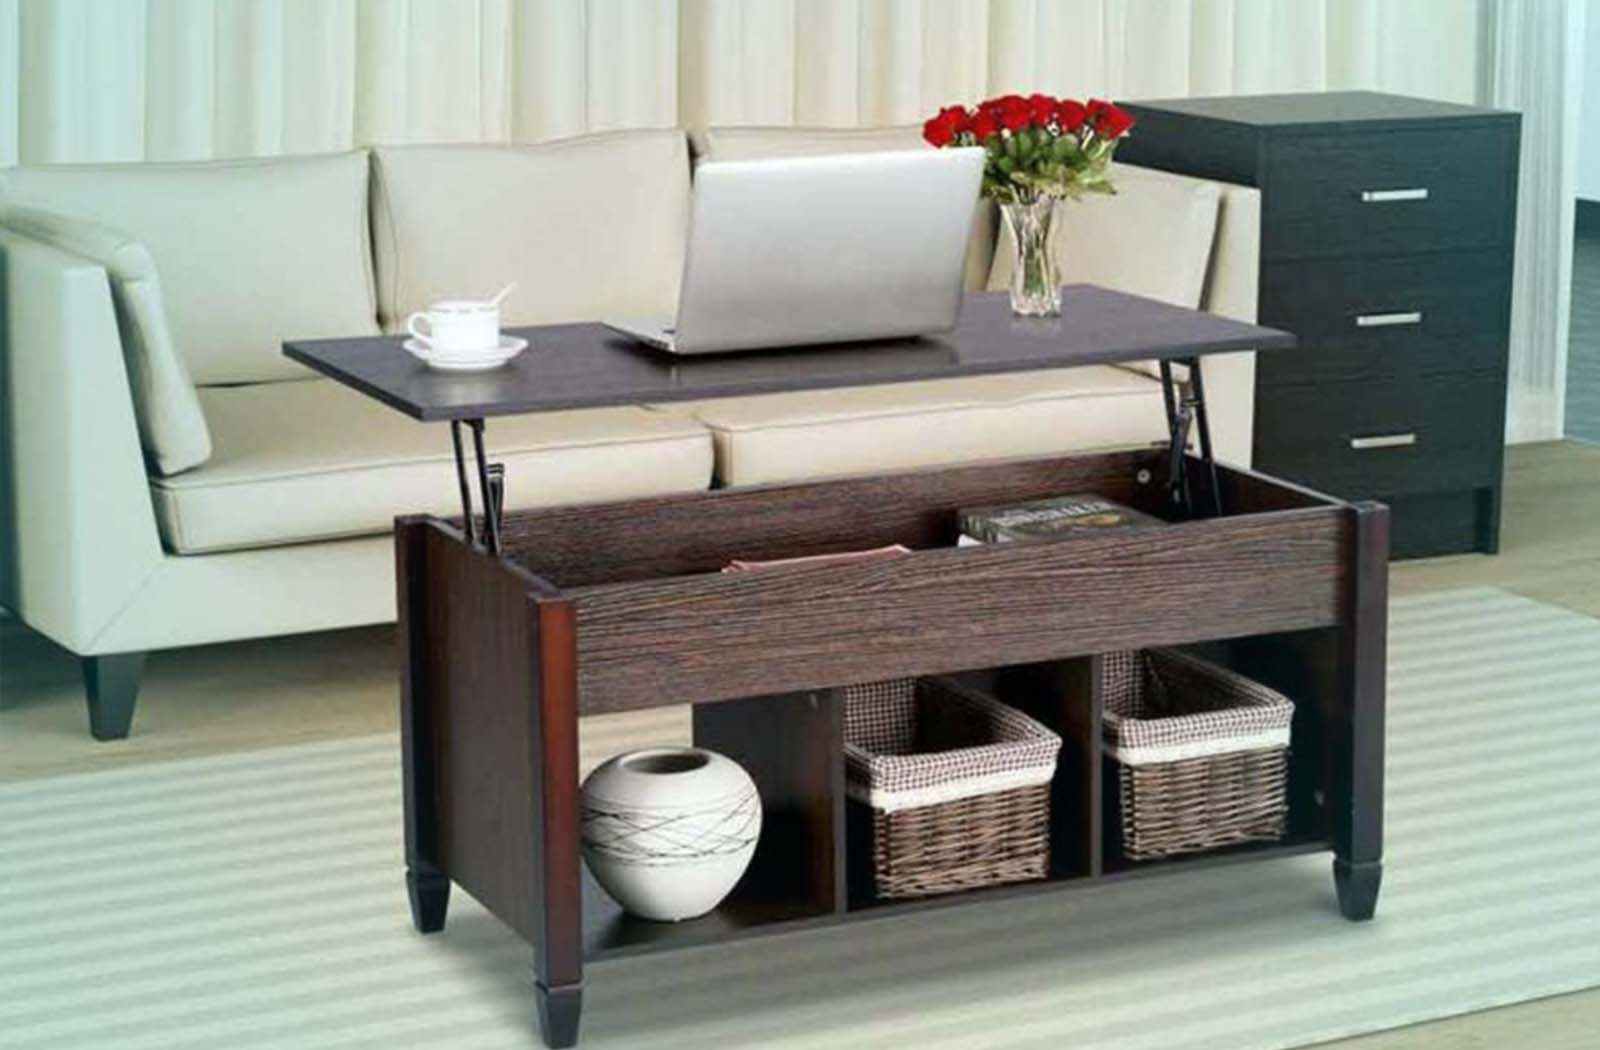 Best Lift Top Coffee Table